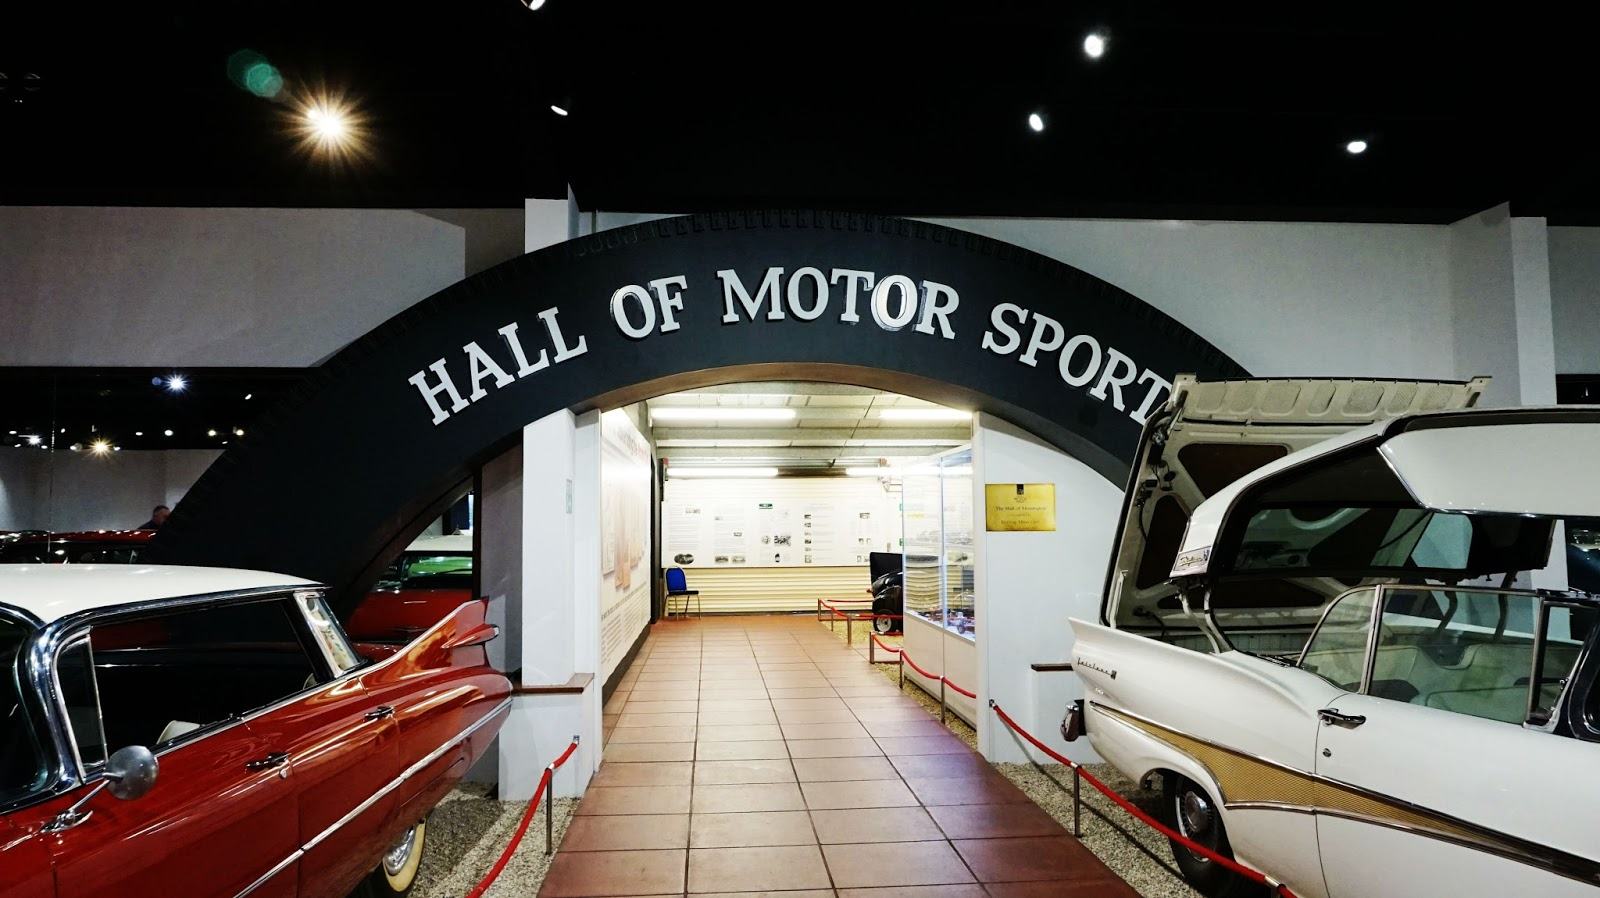 hall of motor sports car super car classic car nostalgic haynes motor museum